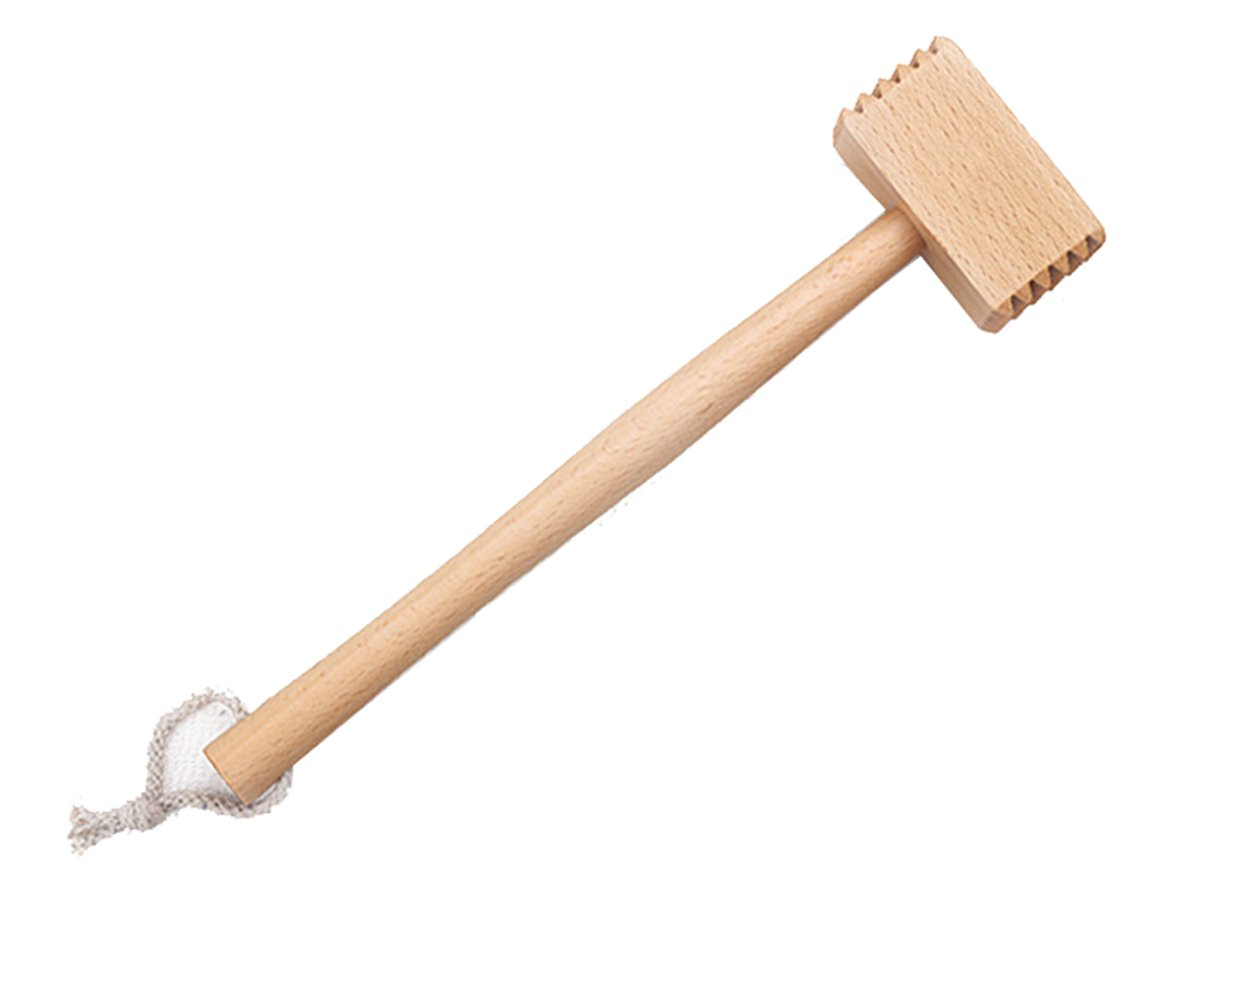 Meat Tenderizer Tool, Meat Pounder Hammer, Double-sided, Solid Wood Made, Hand Held Home Kitchen